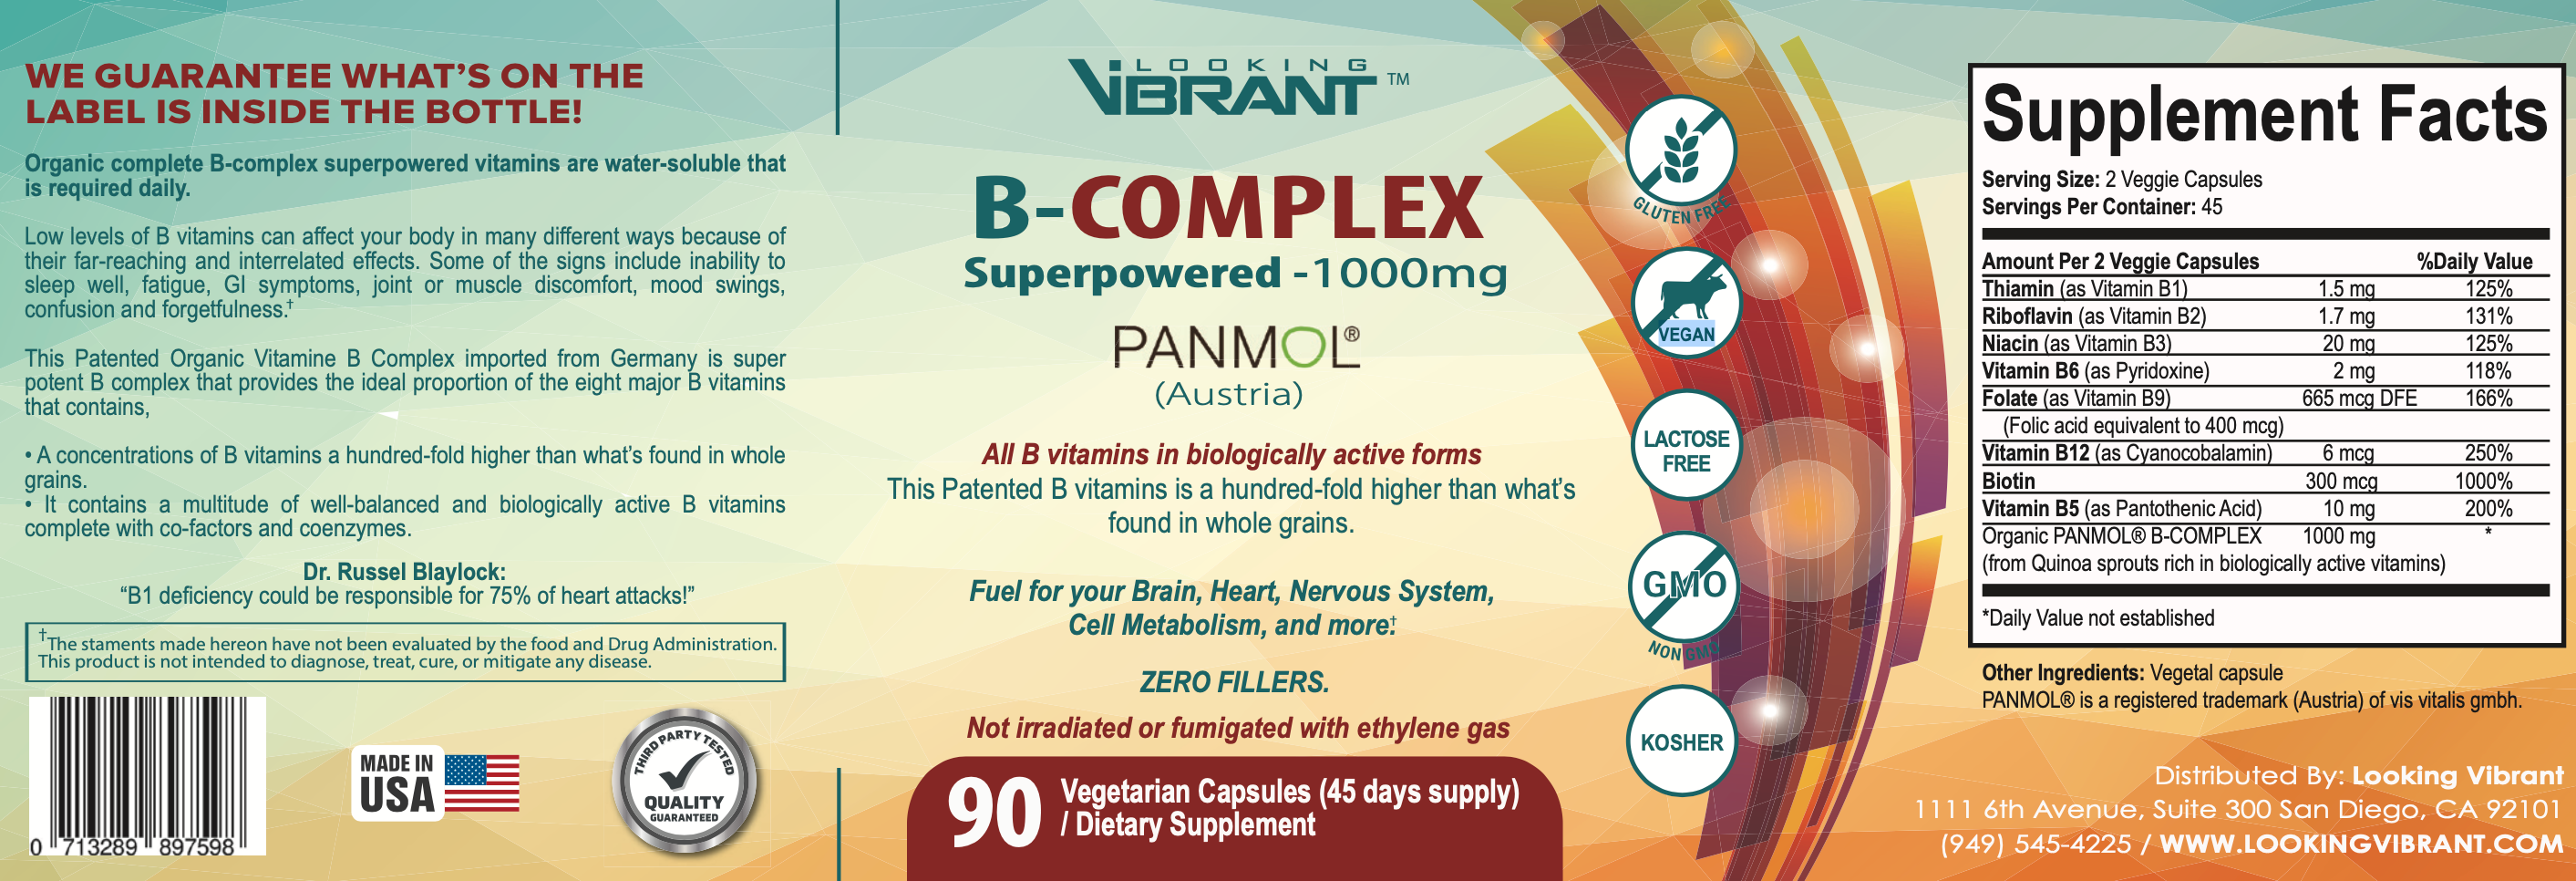 B-COMPLEX Superpowered-1000mg